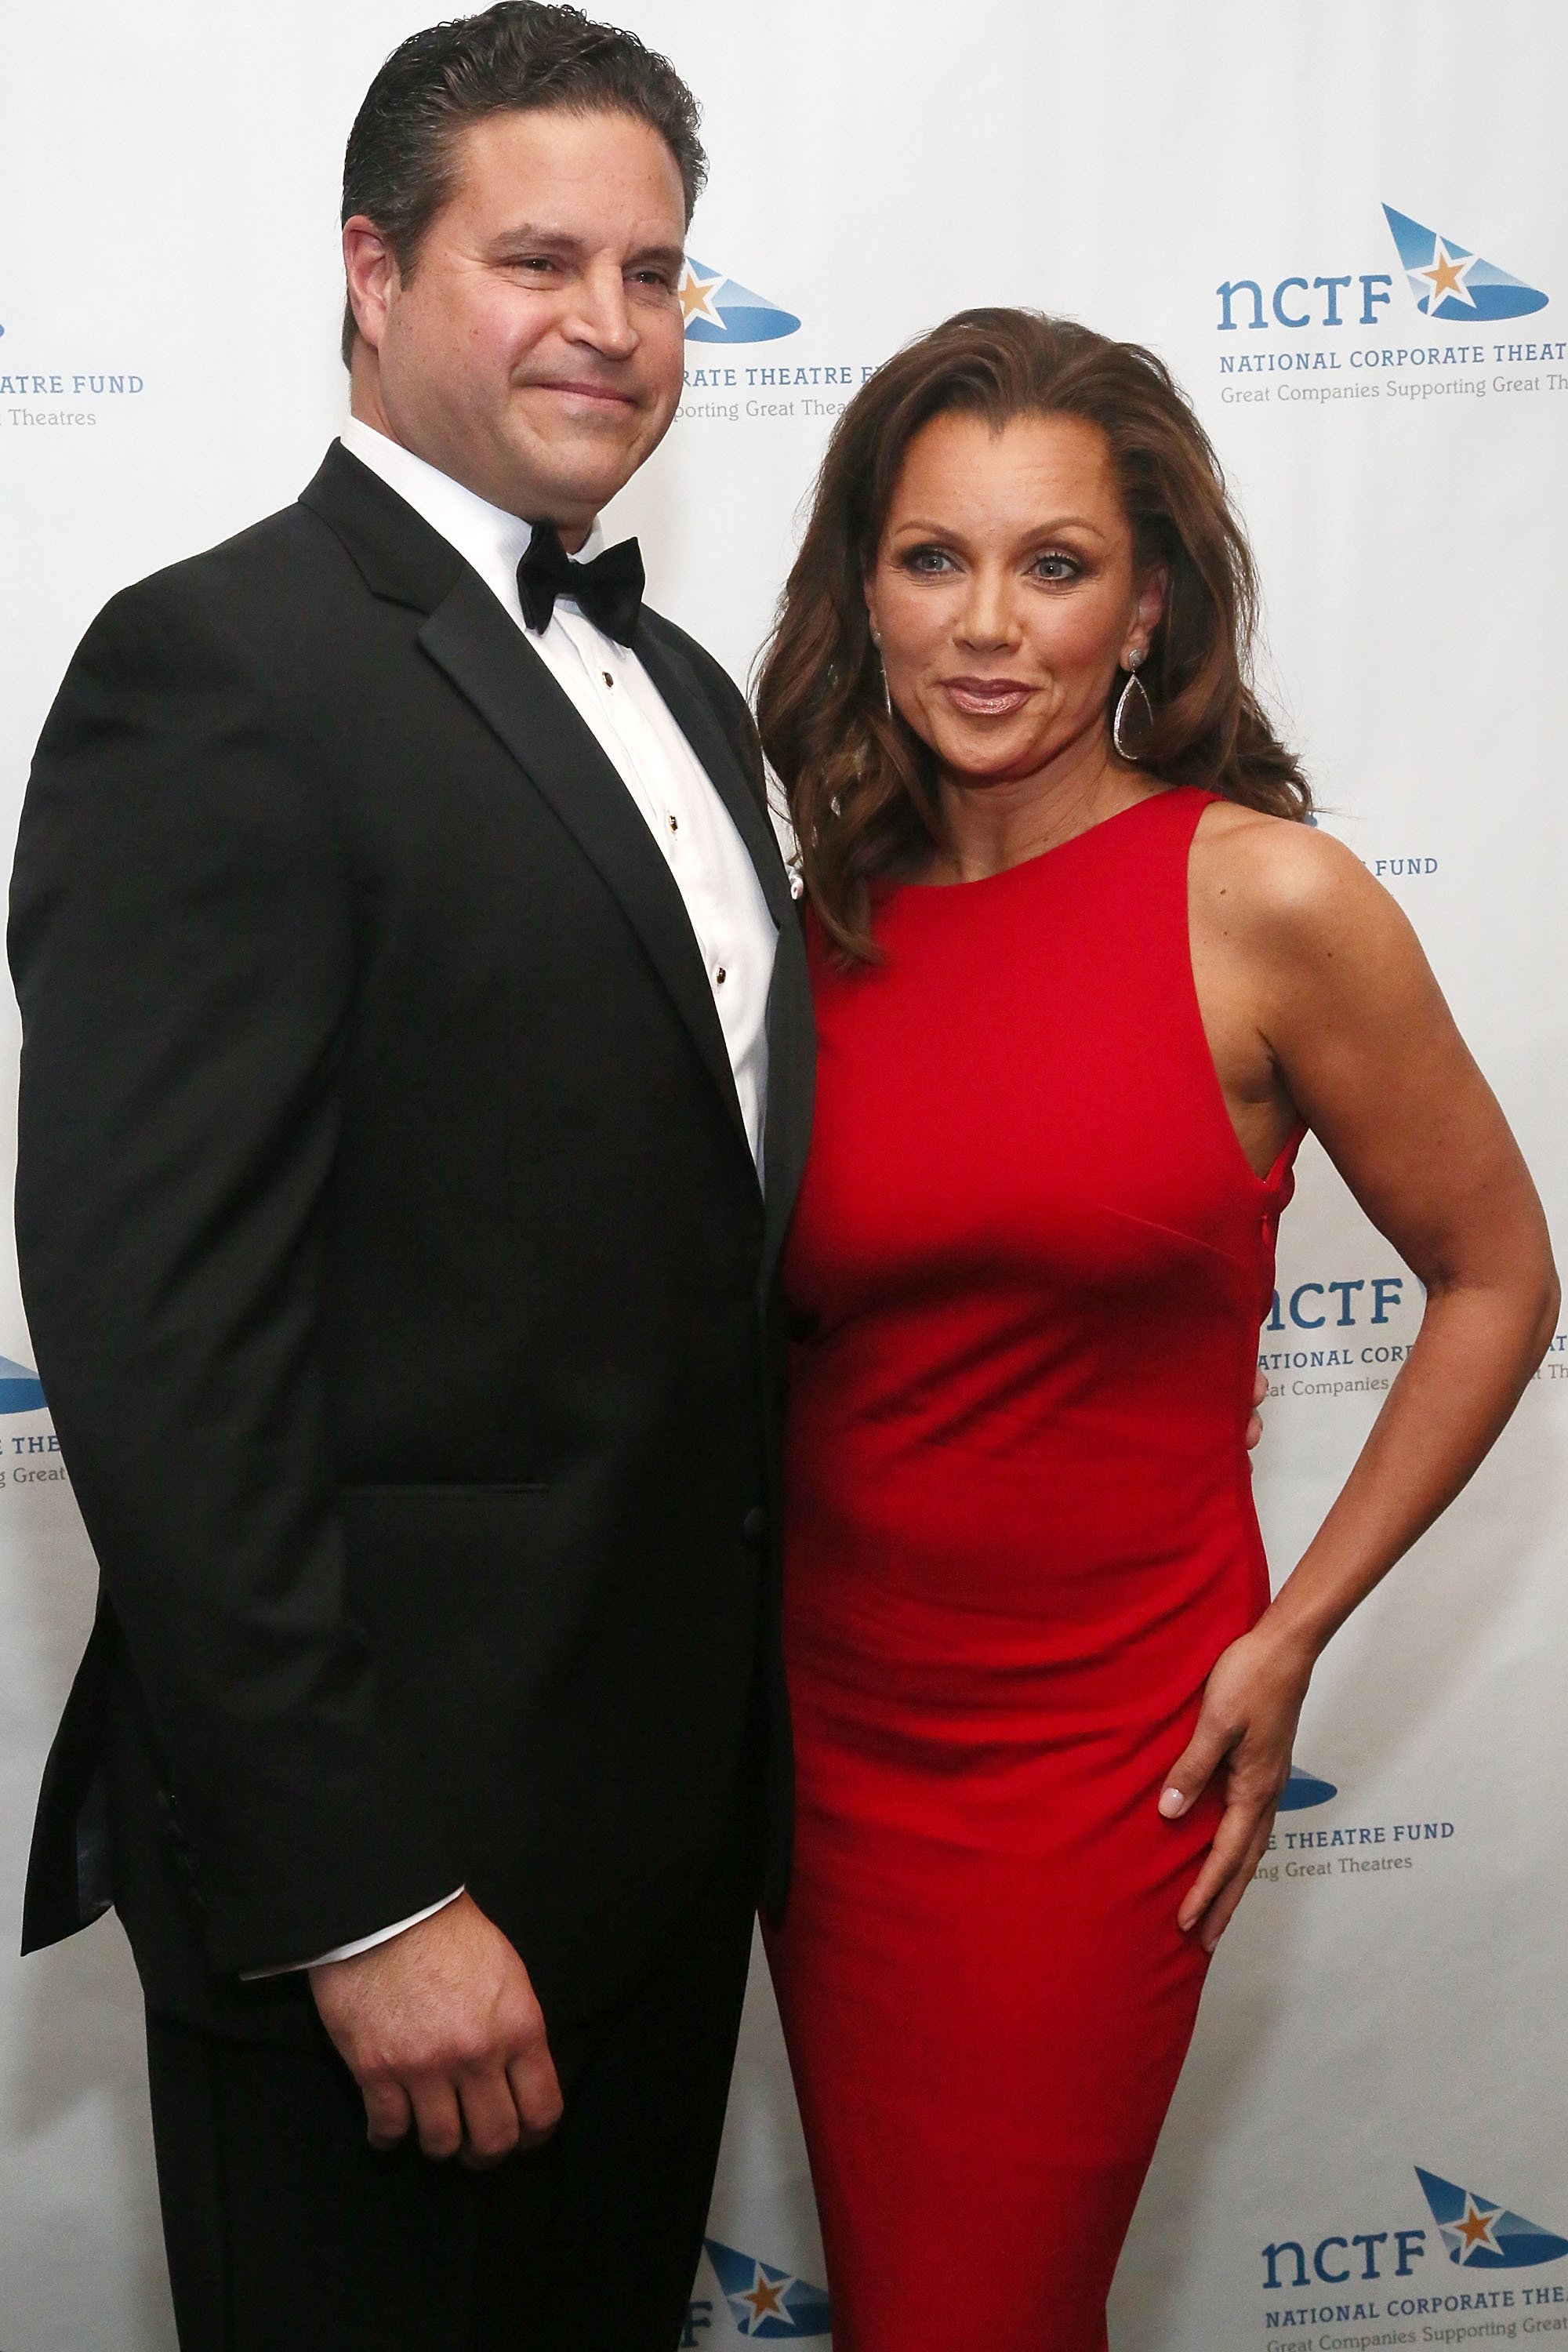 Vanessa Williams and husband Jim Skrip at the National Corporate Theatre Fund Chairman's Award Gala | Source: Getty Images